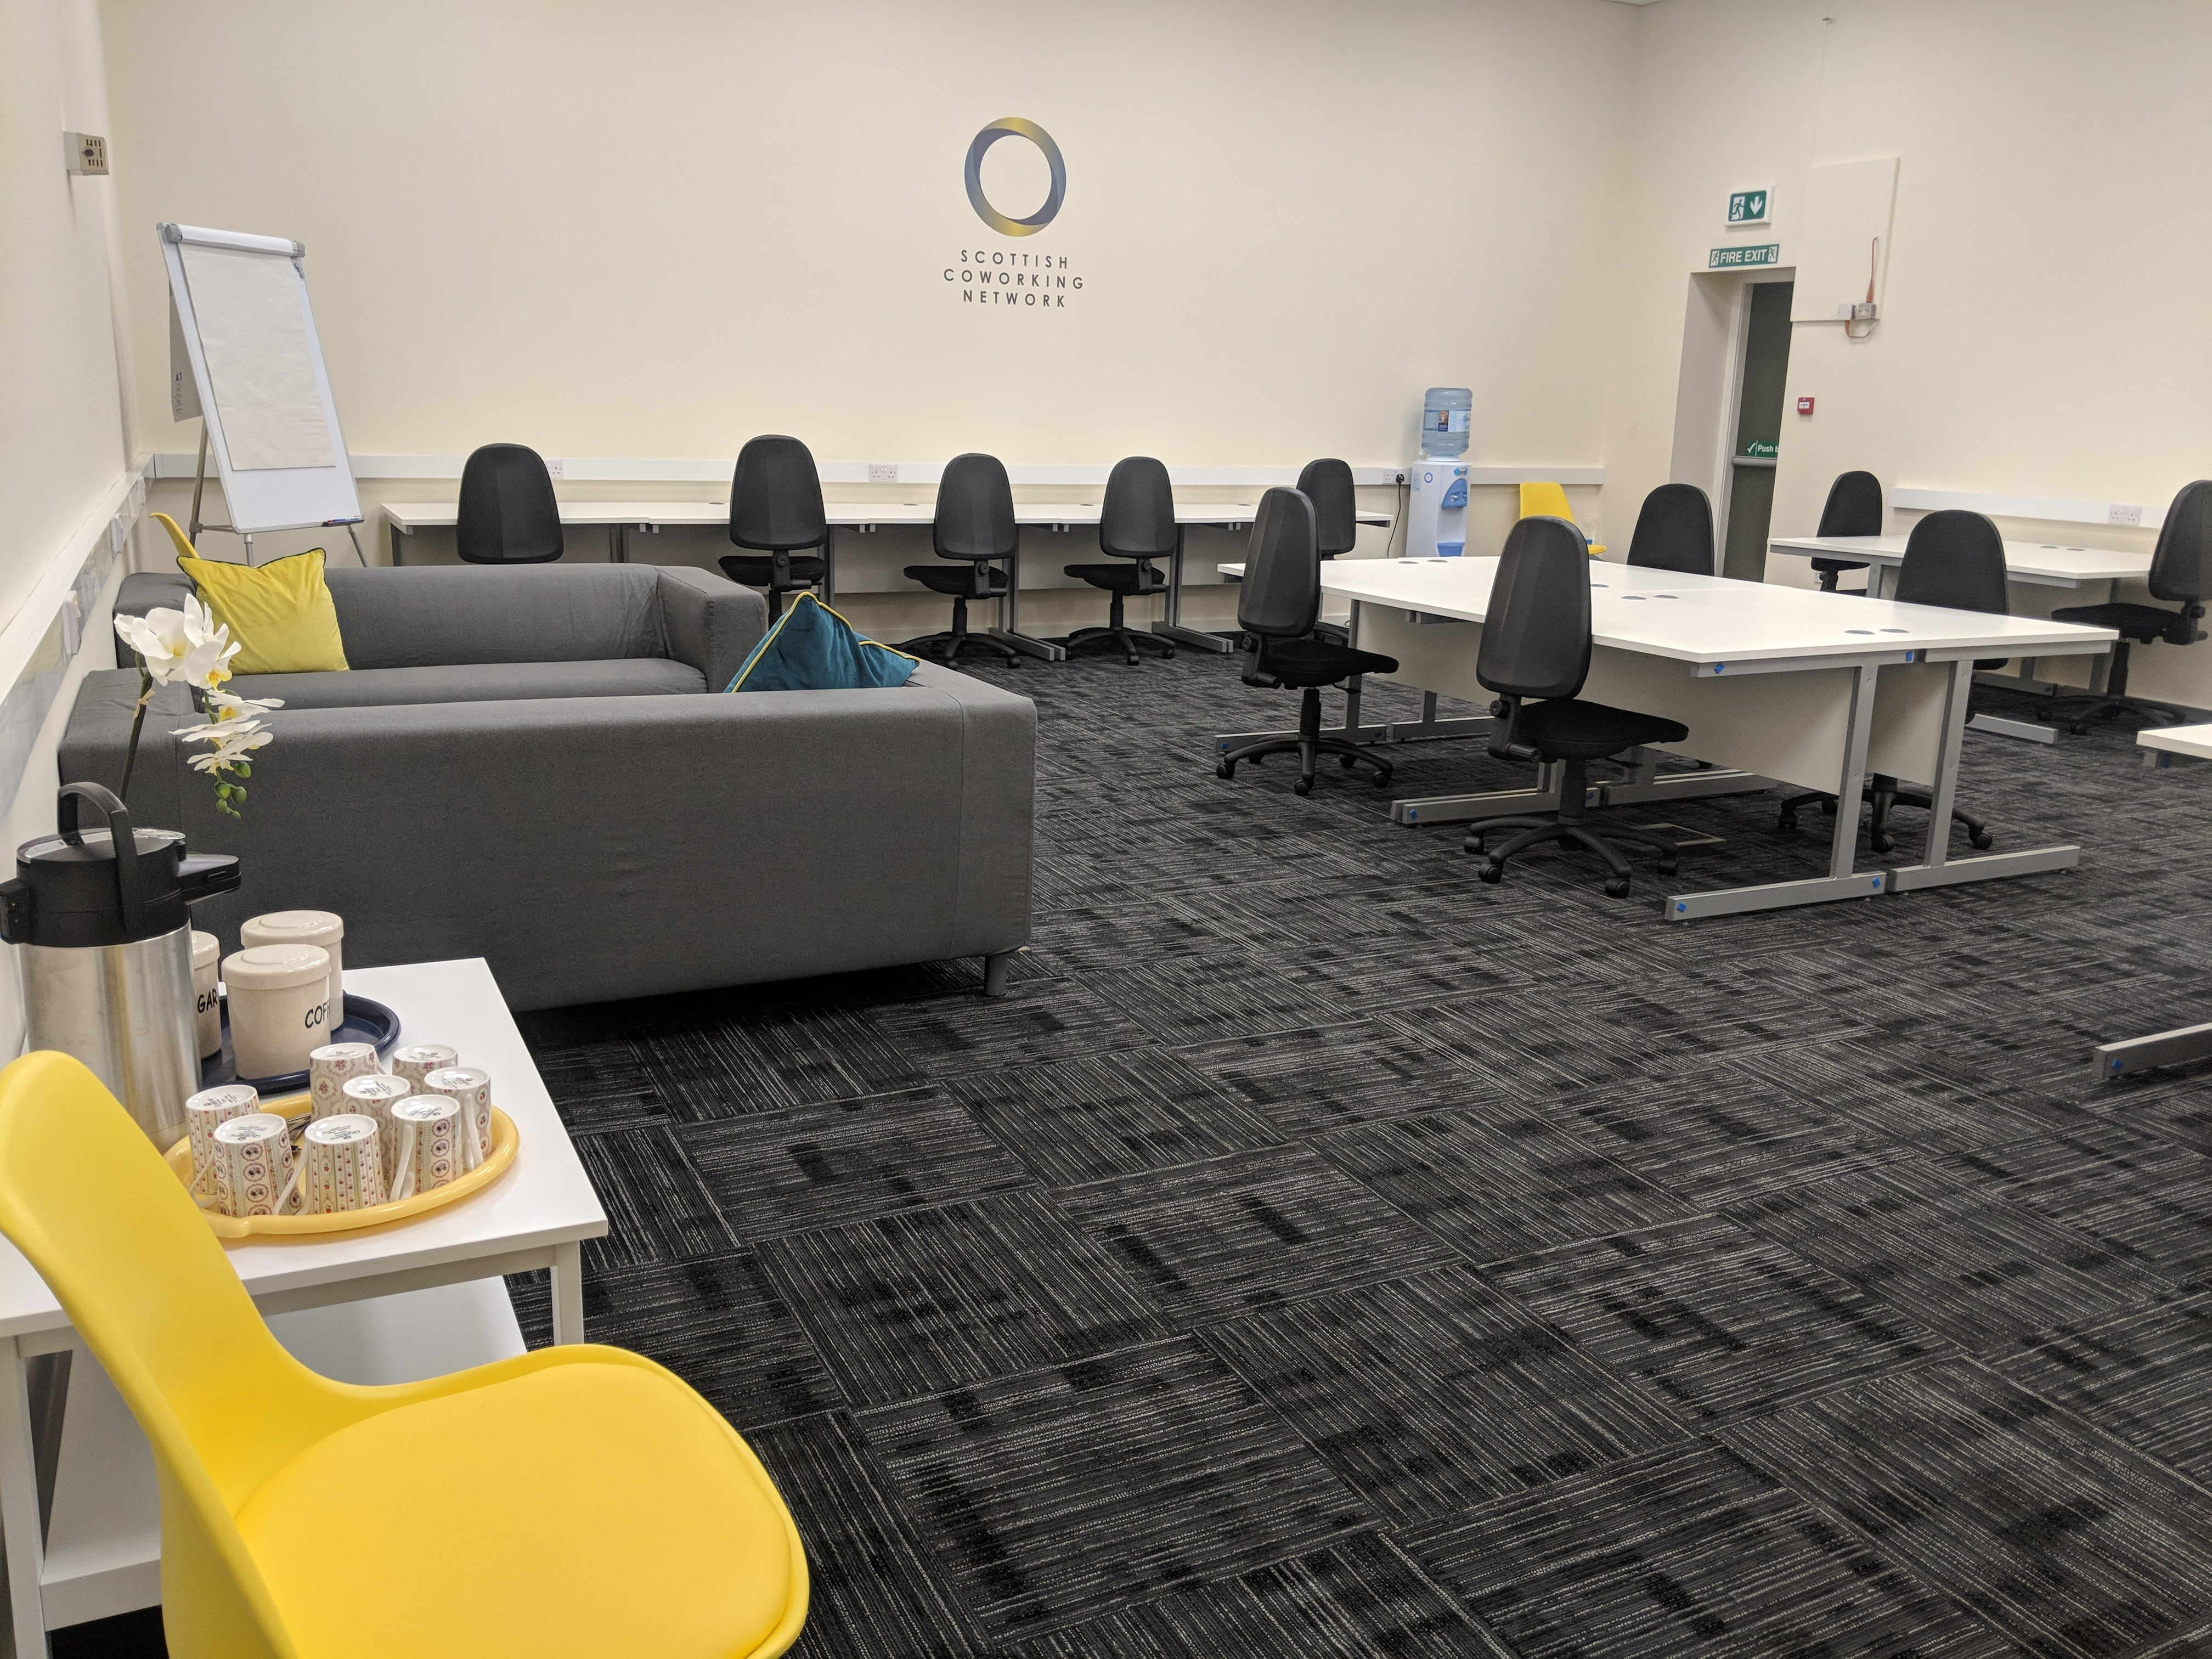 Inverness Library Co-working Business Hub